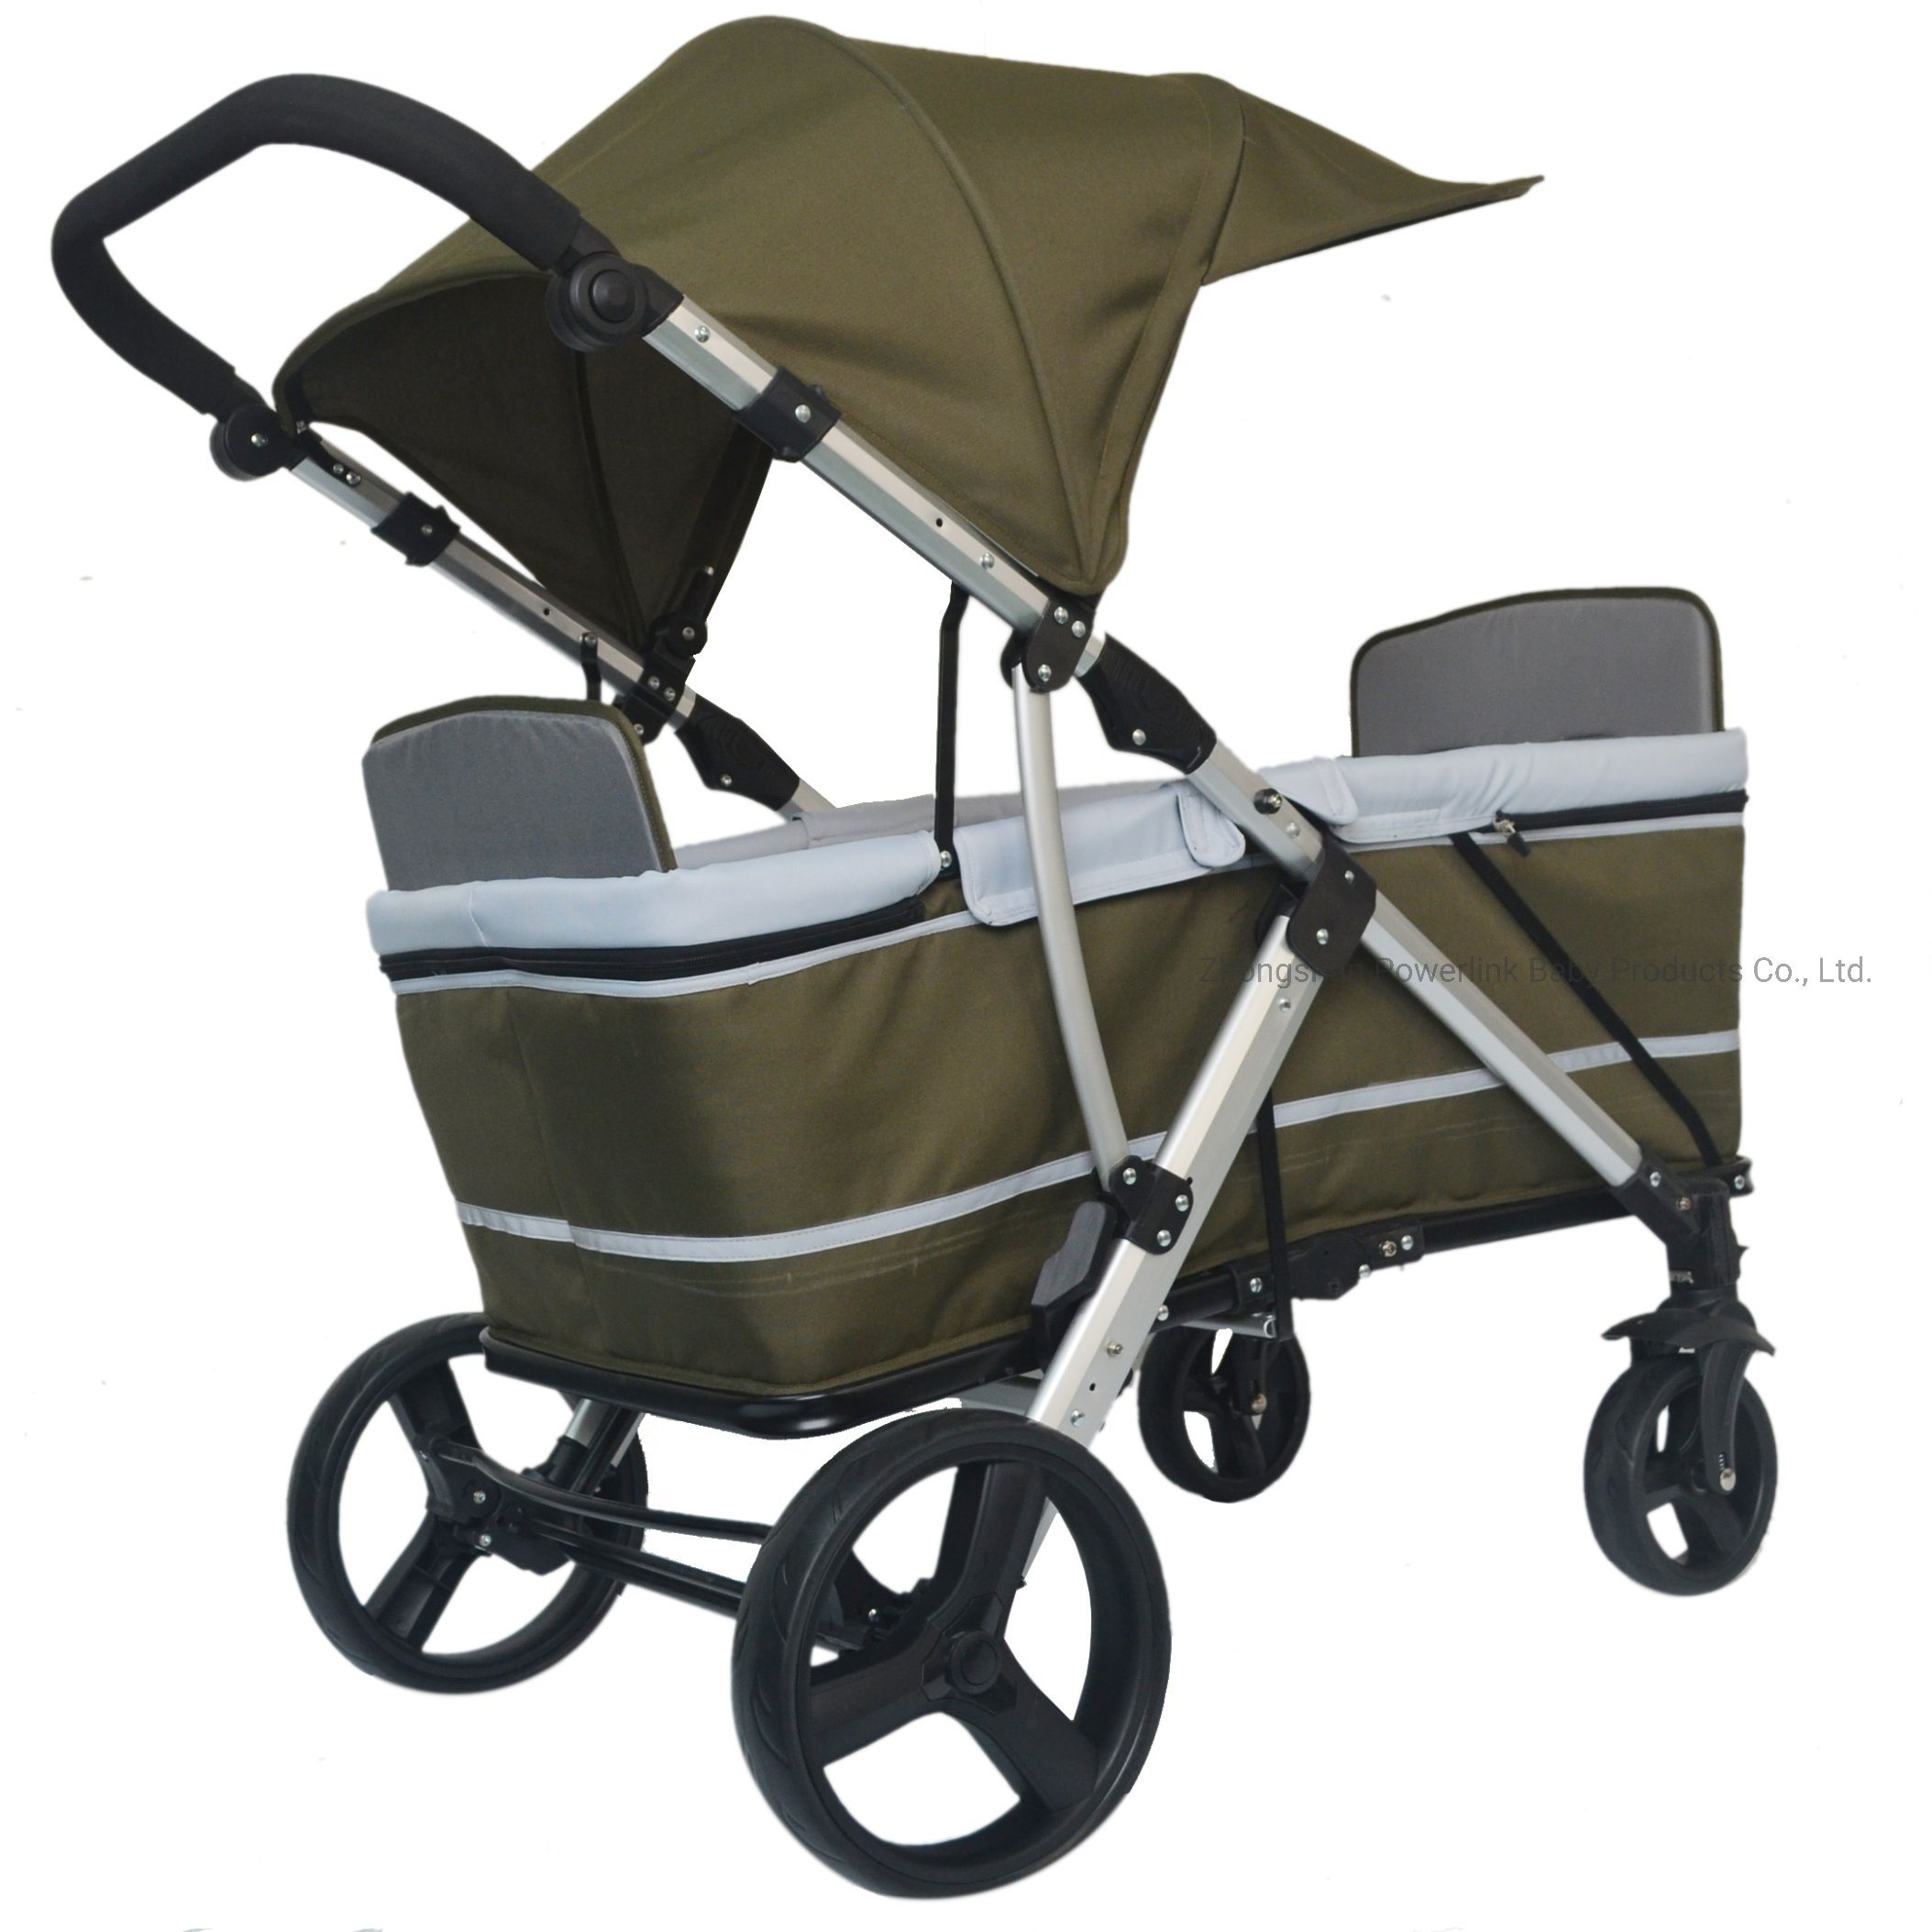 Lightweight Folding Pram China Baby Stroller Lightweight Folding Stroller Wagon For